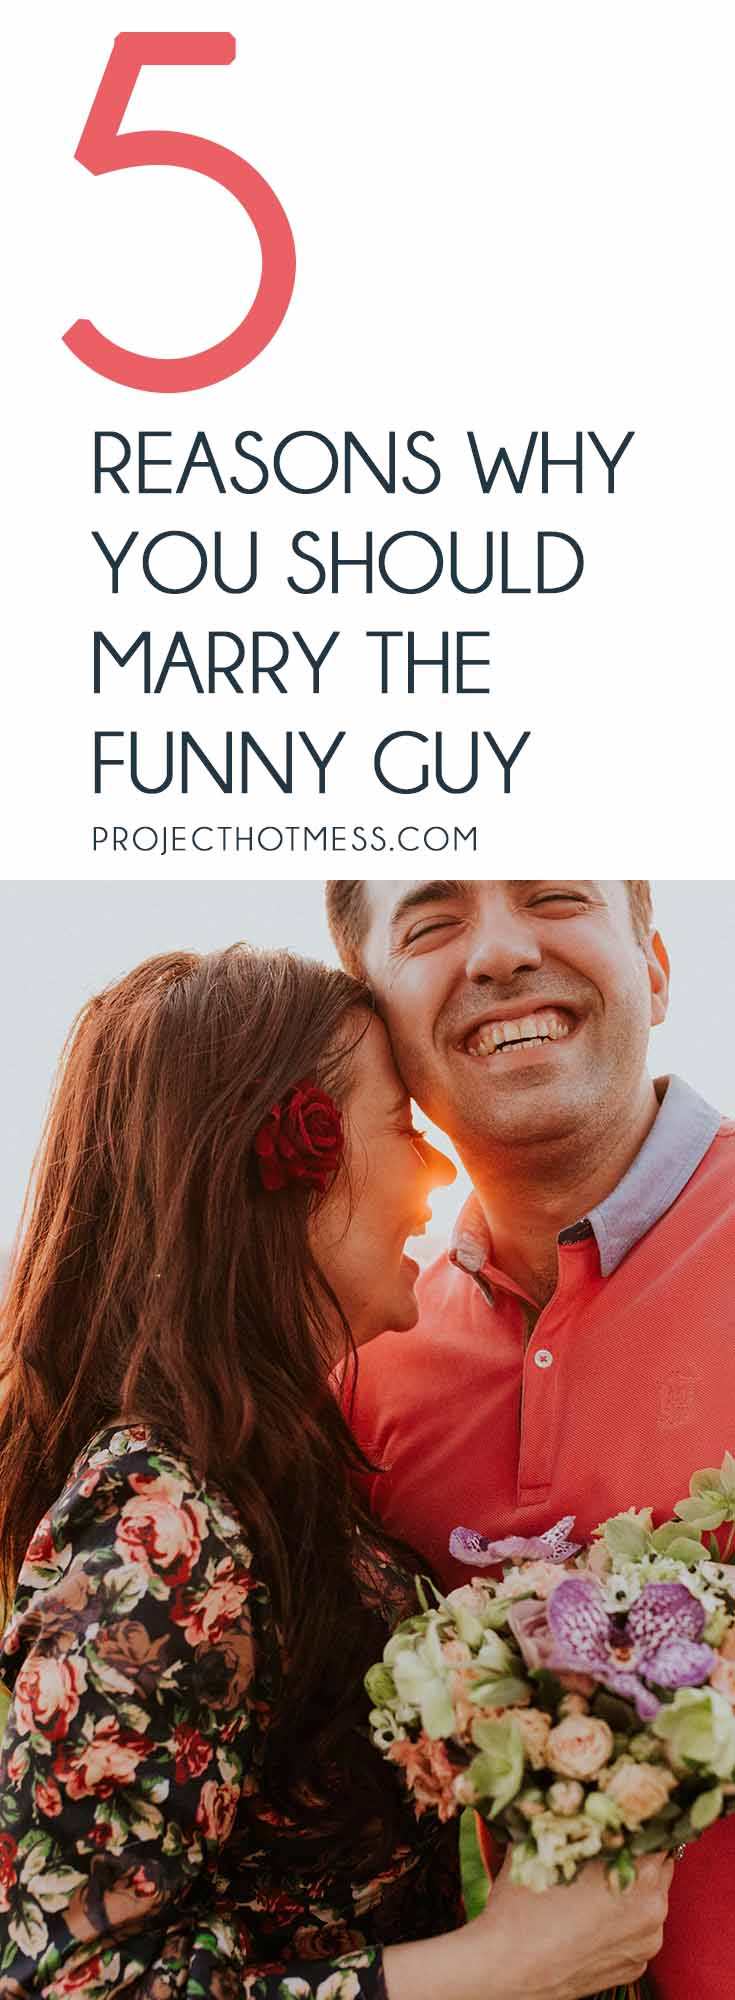 Our mothers may argue that we need to marry the rich guy or the kind guy, but if you want a lasting marriage, you should definitely marry the funny guy. Relationships | Marriage | Partner | Marriage Advice | Marriage Goals | In Love | Love | Marriage Problems | Spice Up Your Marriage | Marriage Ideas | Happy Marriage | Relationship Goals | Relationship Advice | Relationship Tips |